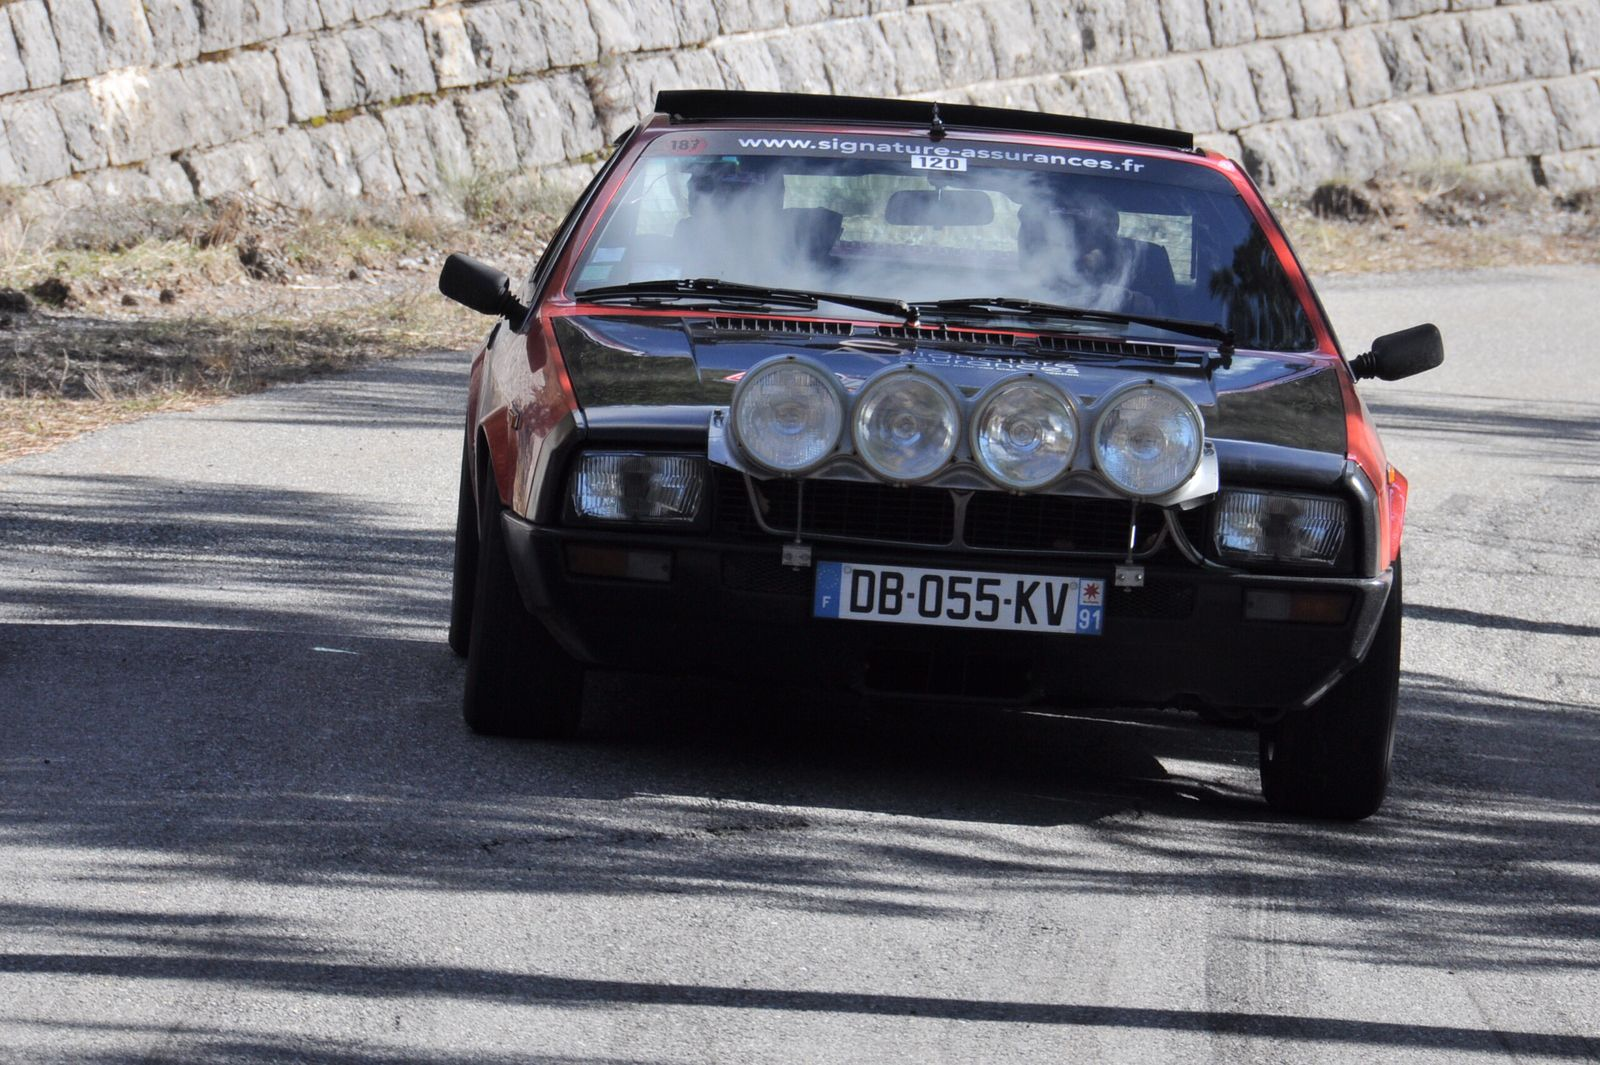 Lancia Beta Monte Carlo 1976 ..... Photo : R.S.